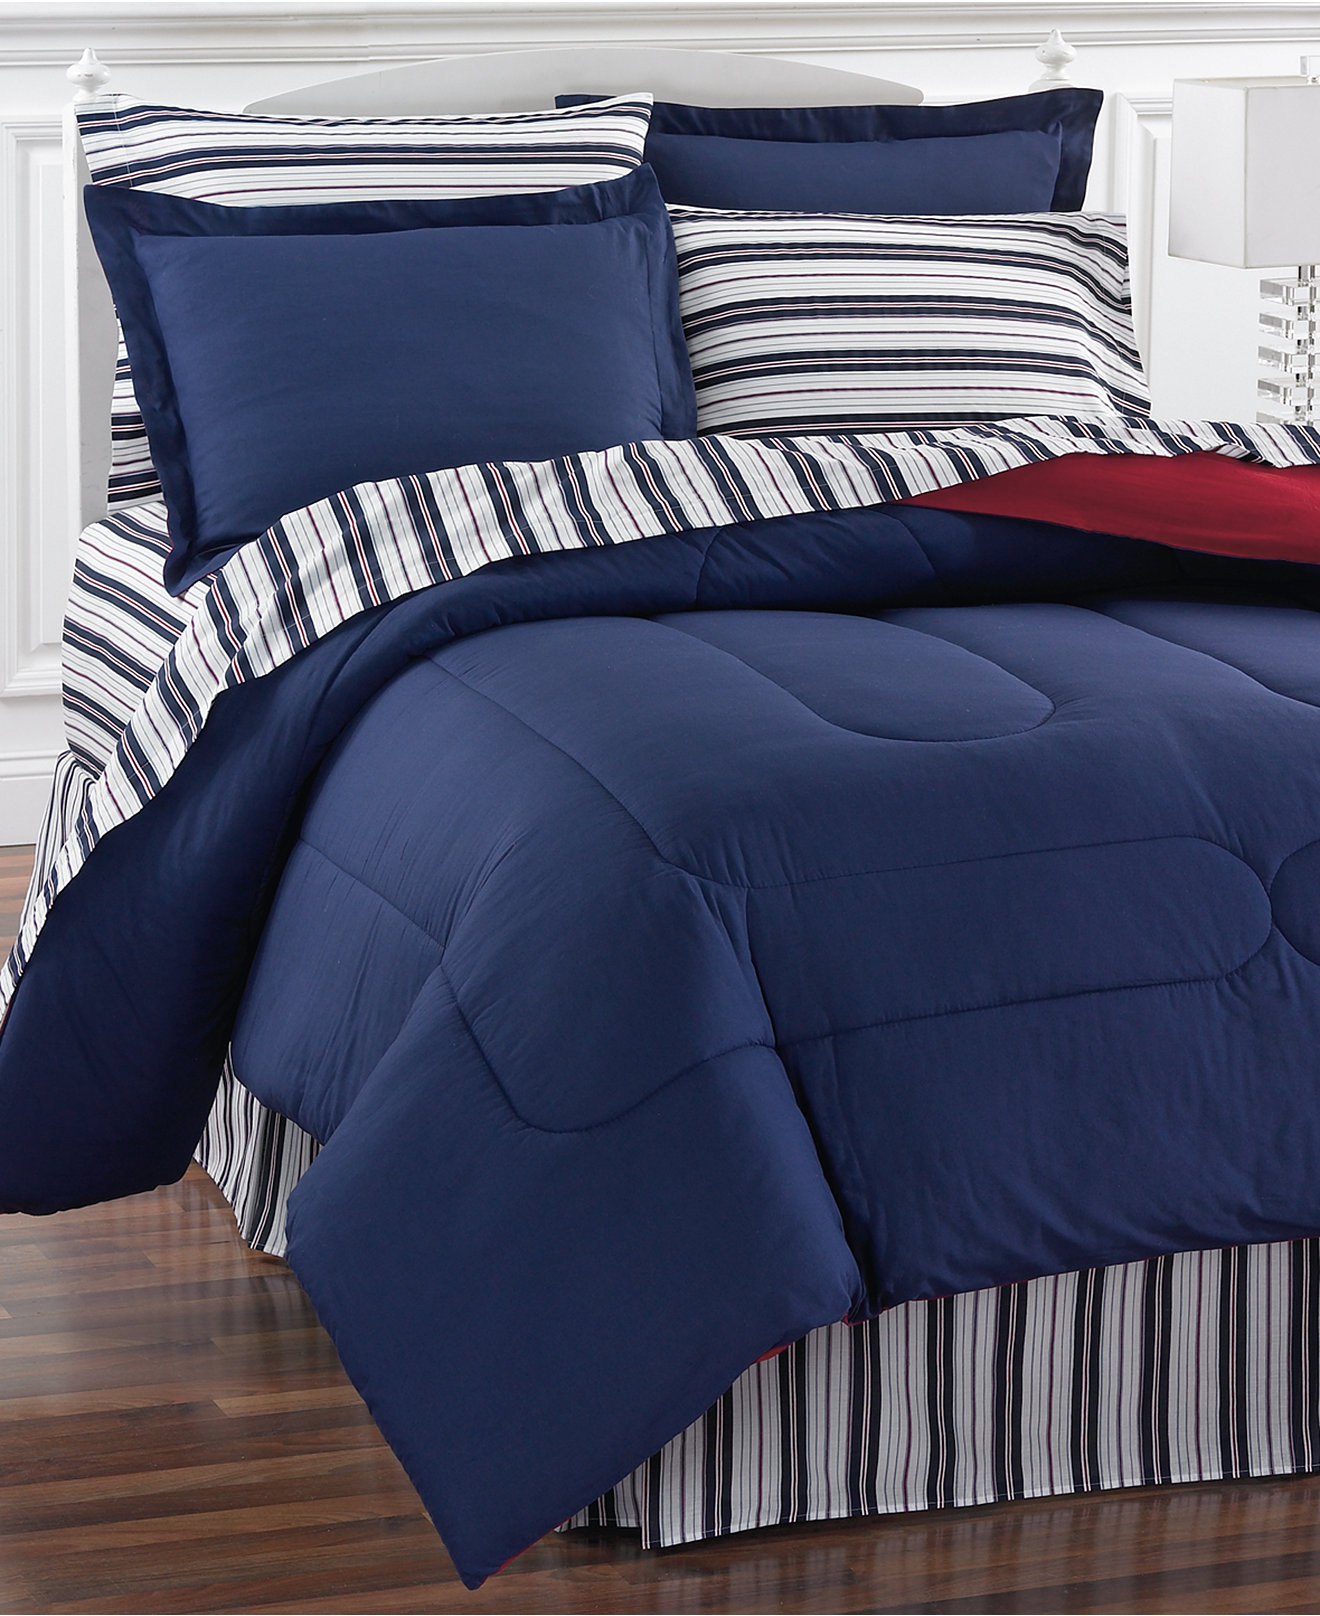 Navy Blue Comforter | Twin Bed Comforters | Turquoise Comforter Set King